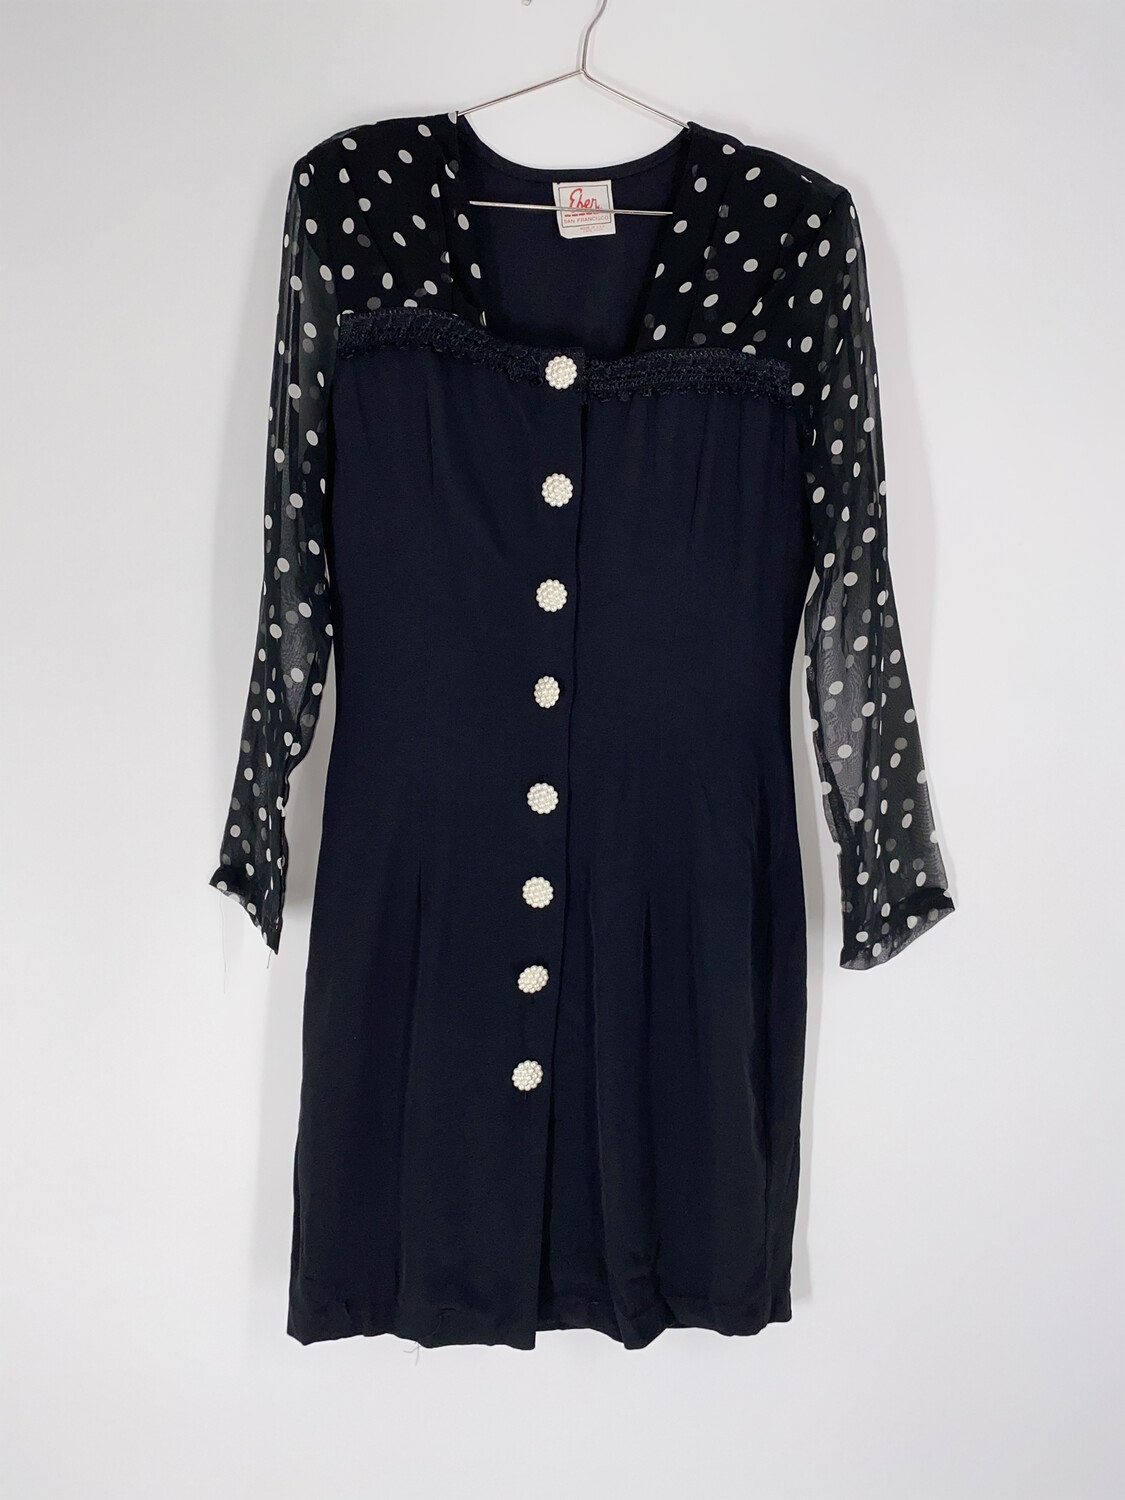 Polka Dot Sheer Sleeve Dress Size S